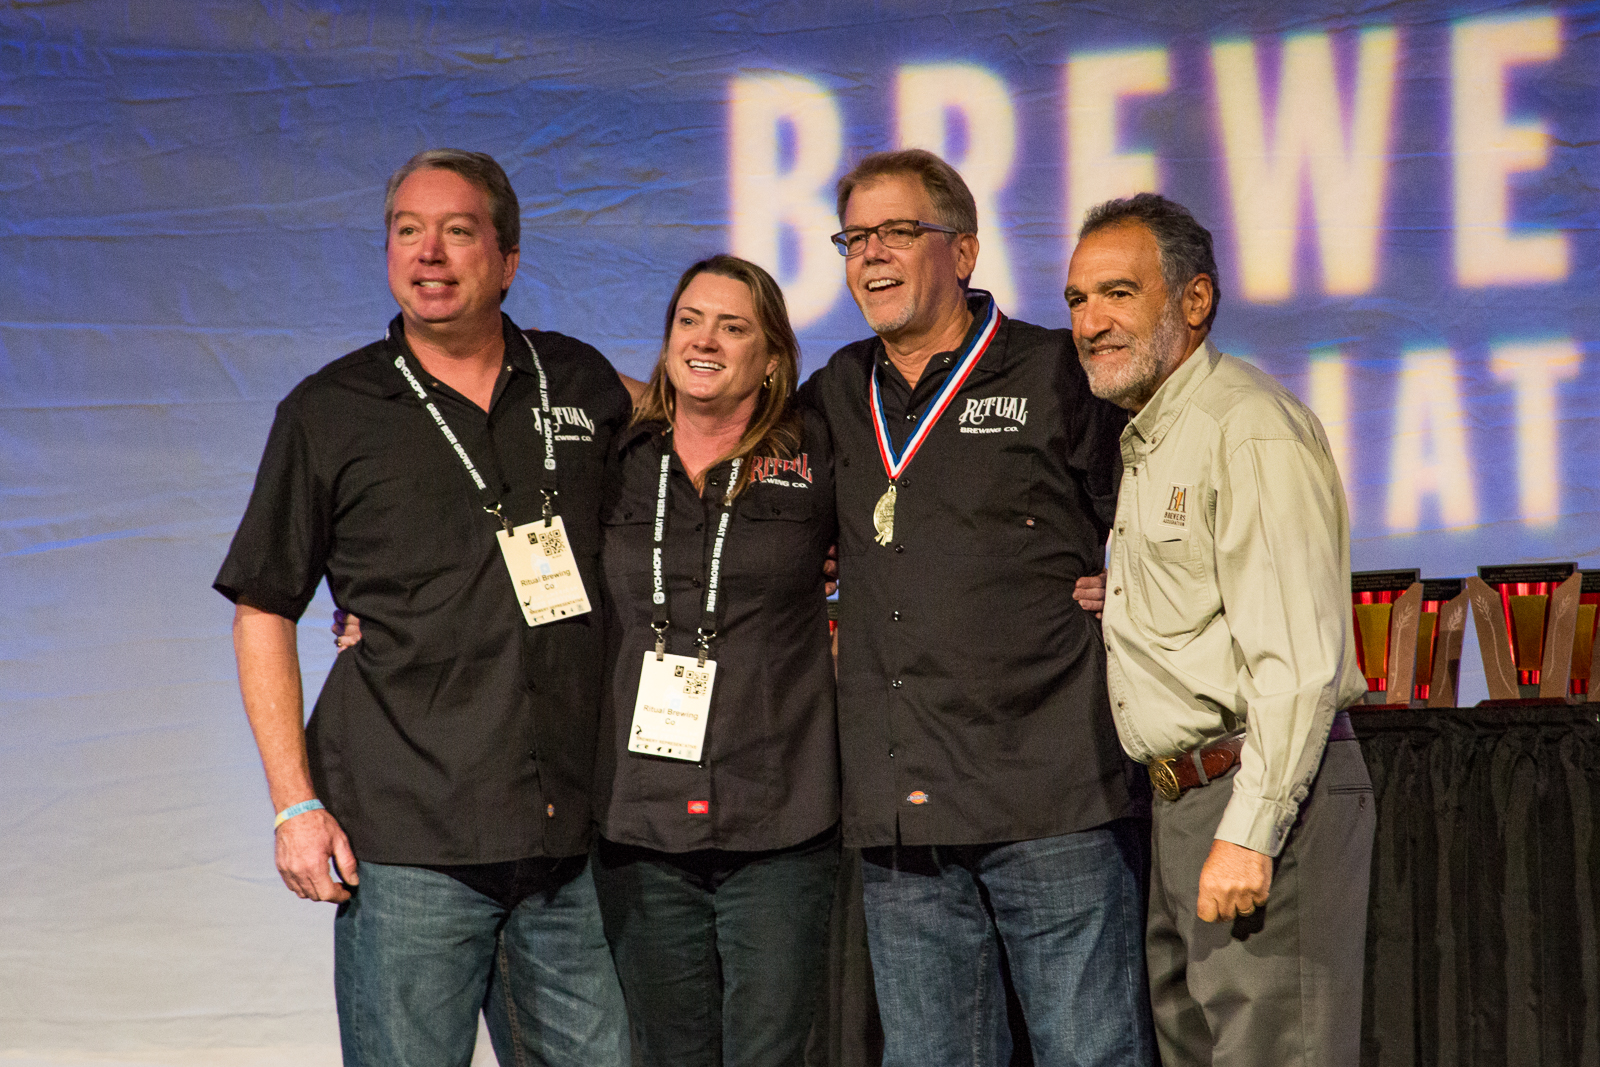 Ritual Brewing Company at GABF 2015